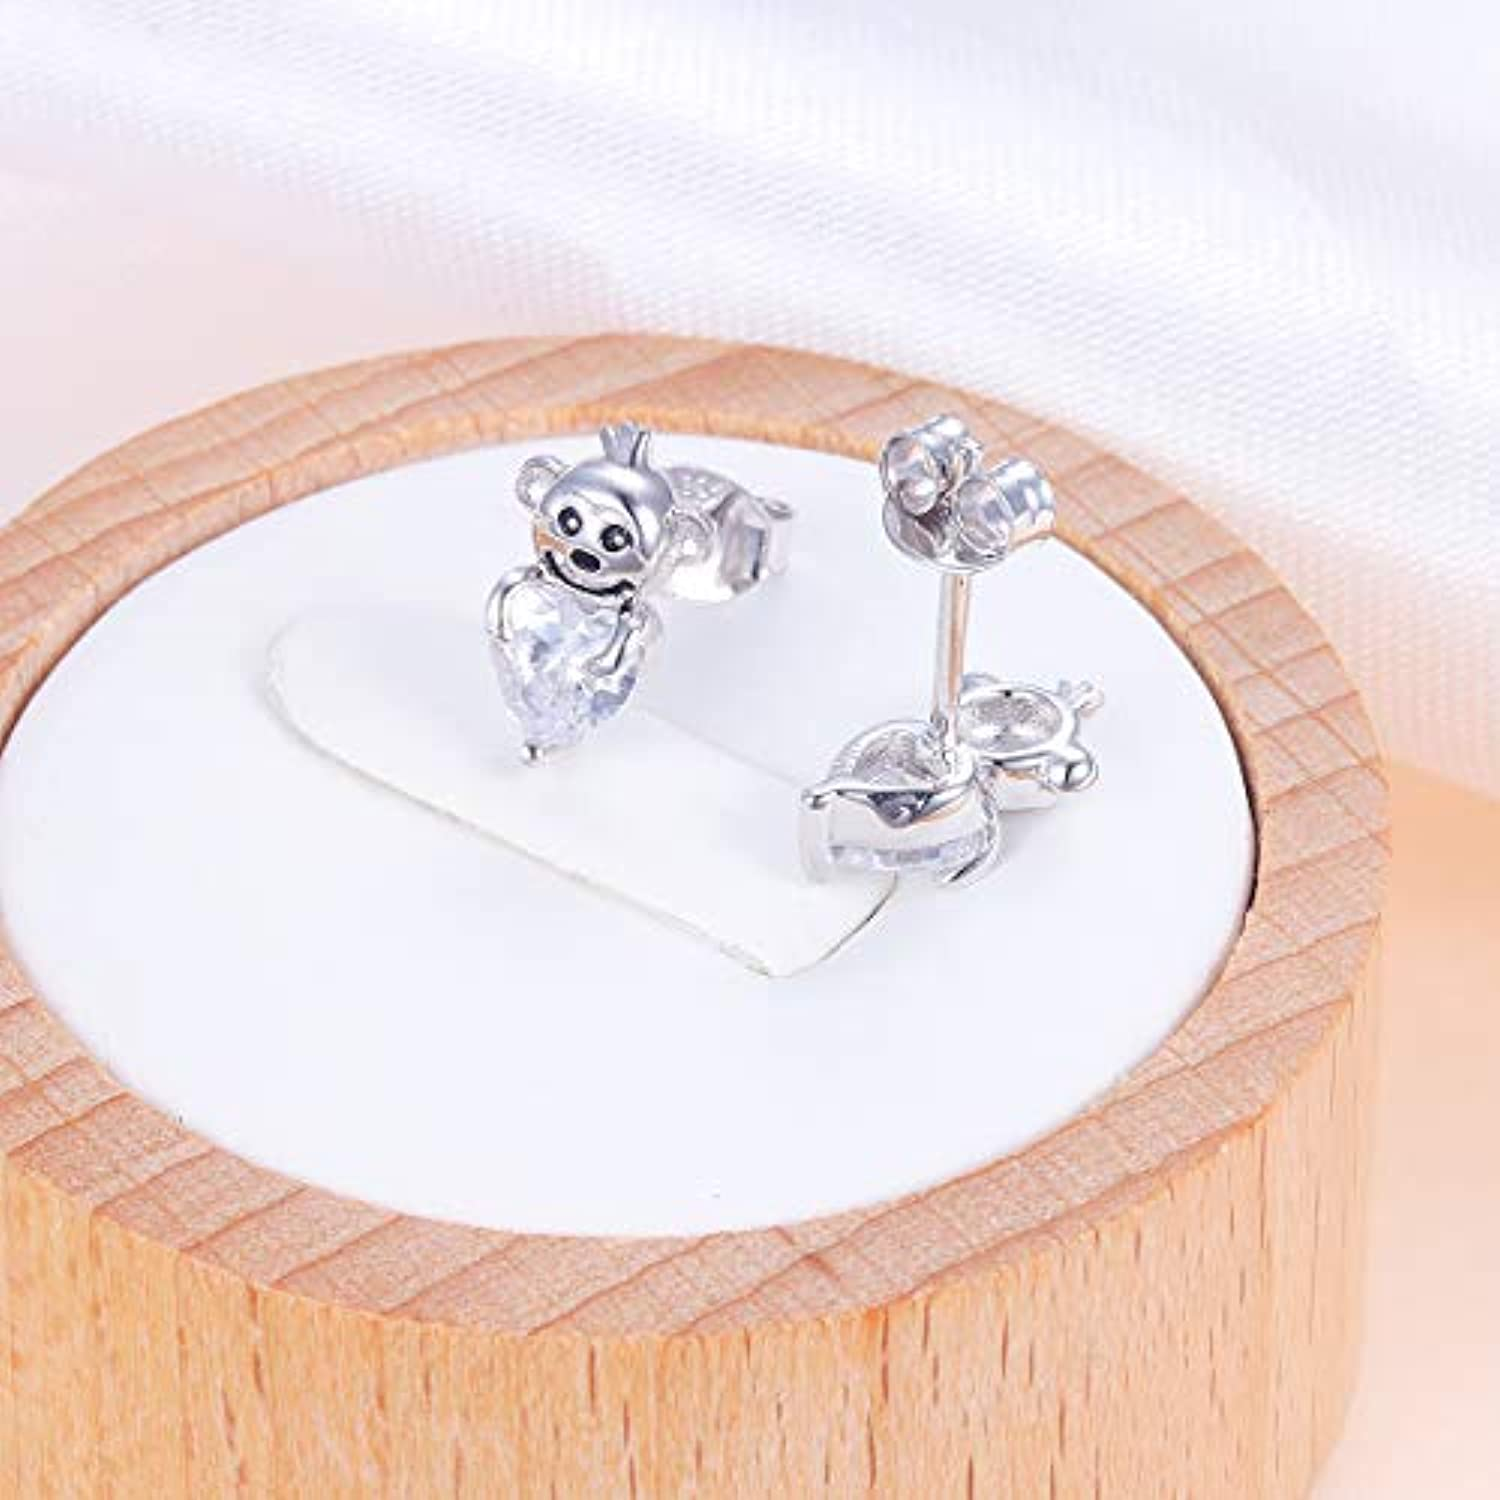 925 Sterling Silver I Love You More Engraved Cute Animal Monkey in Heart Stud Earrings for Women Girls Birthday Gift